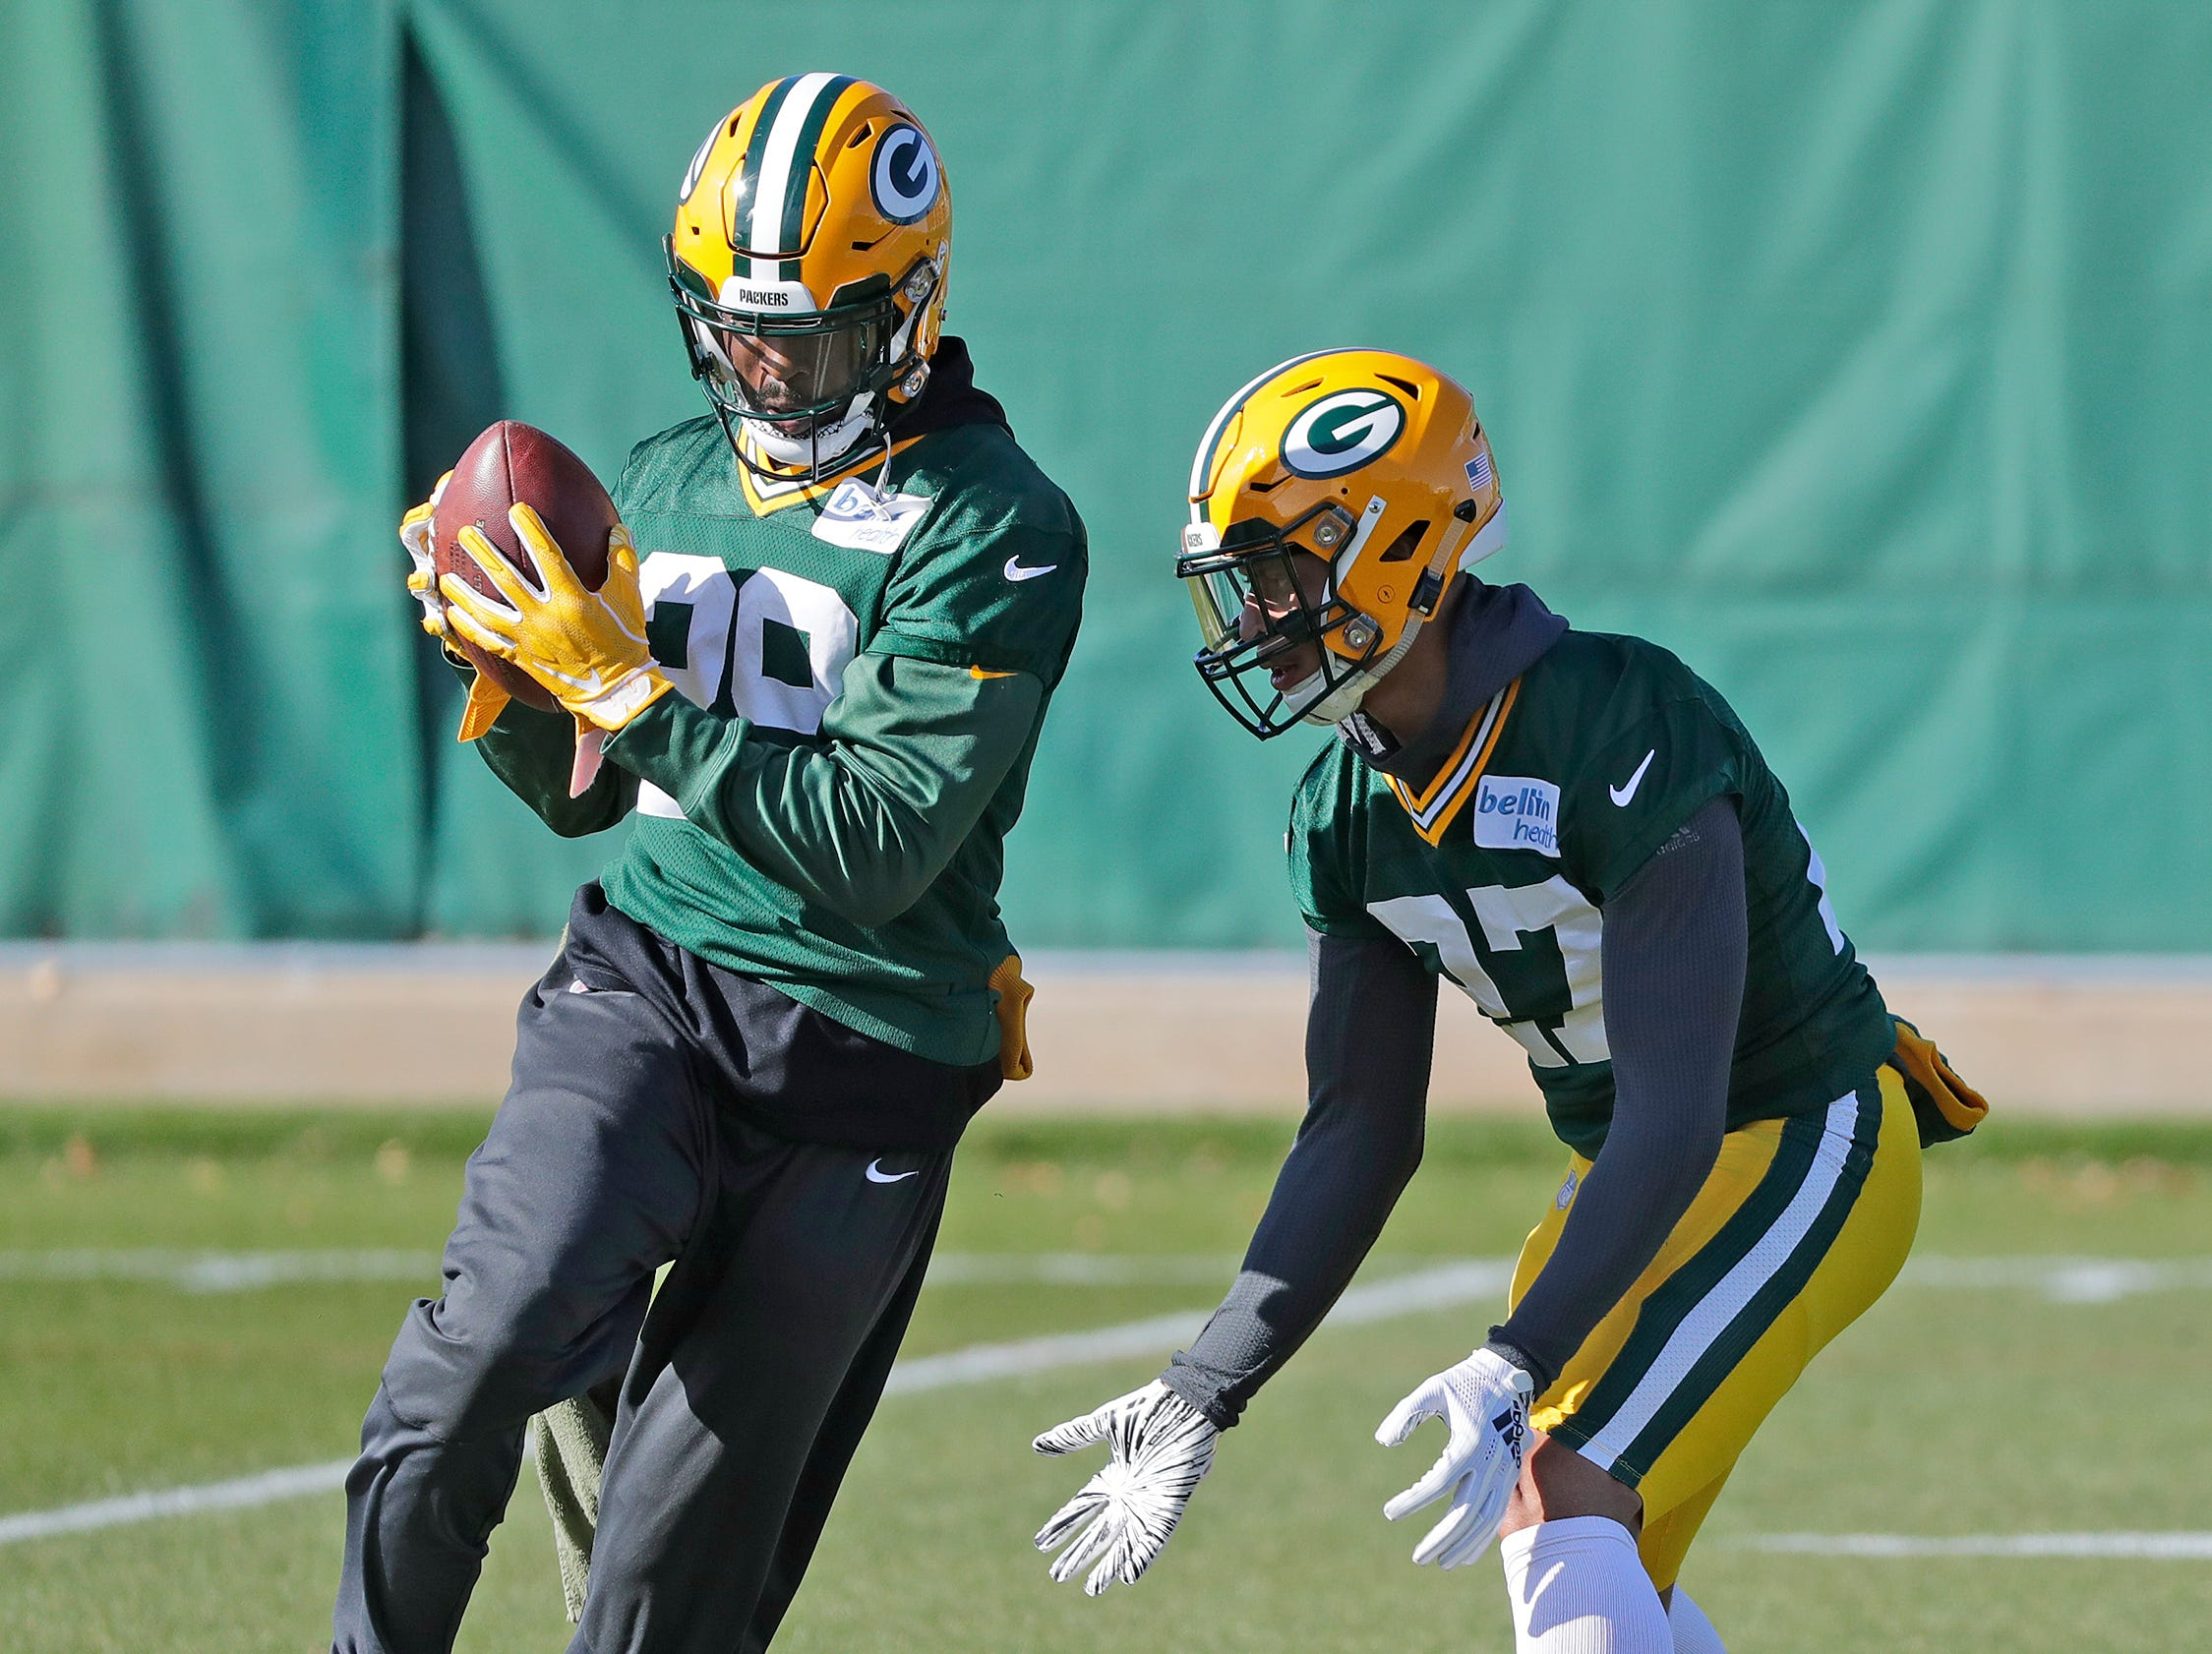 Green Bay Packers strong safety Kentrell Brice (29) and defensive back Josh Jones (27) during practice at Ray Nitschke Field on Wednesday, October 31, 2018 in Ashwaubenon, Wis.